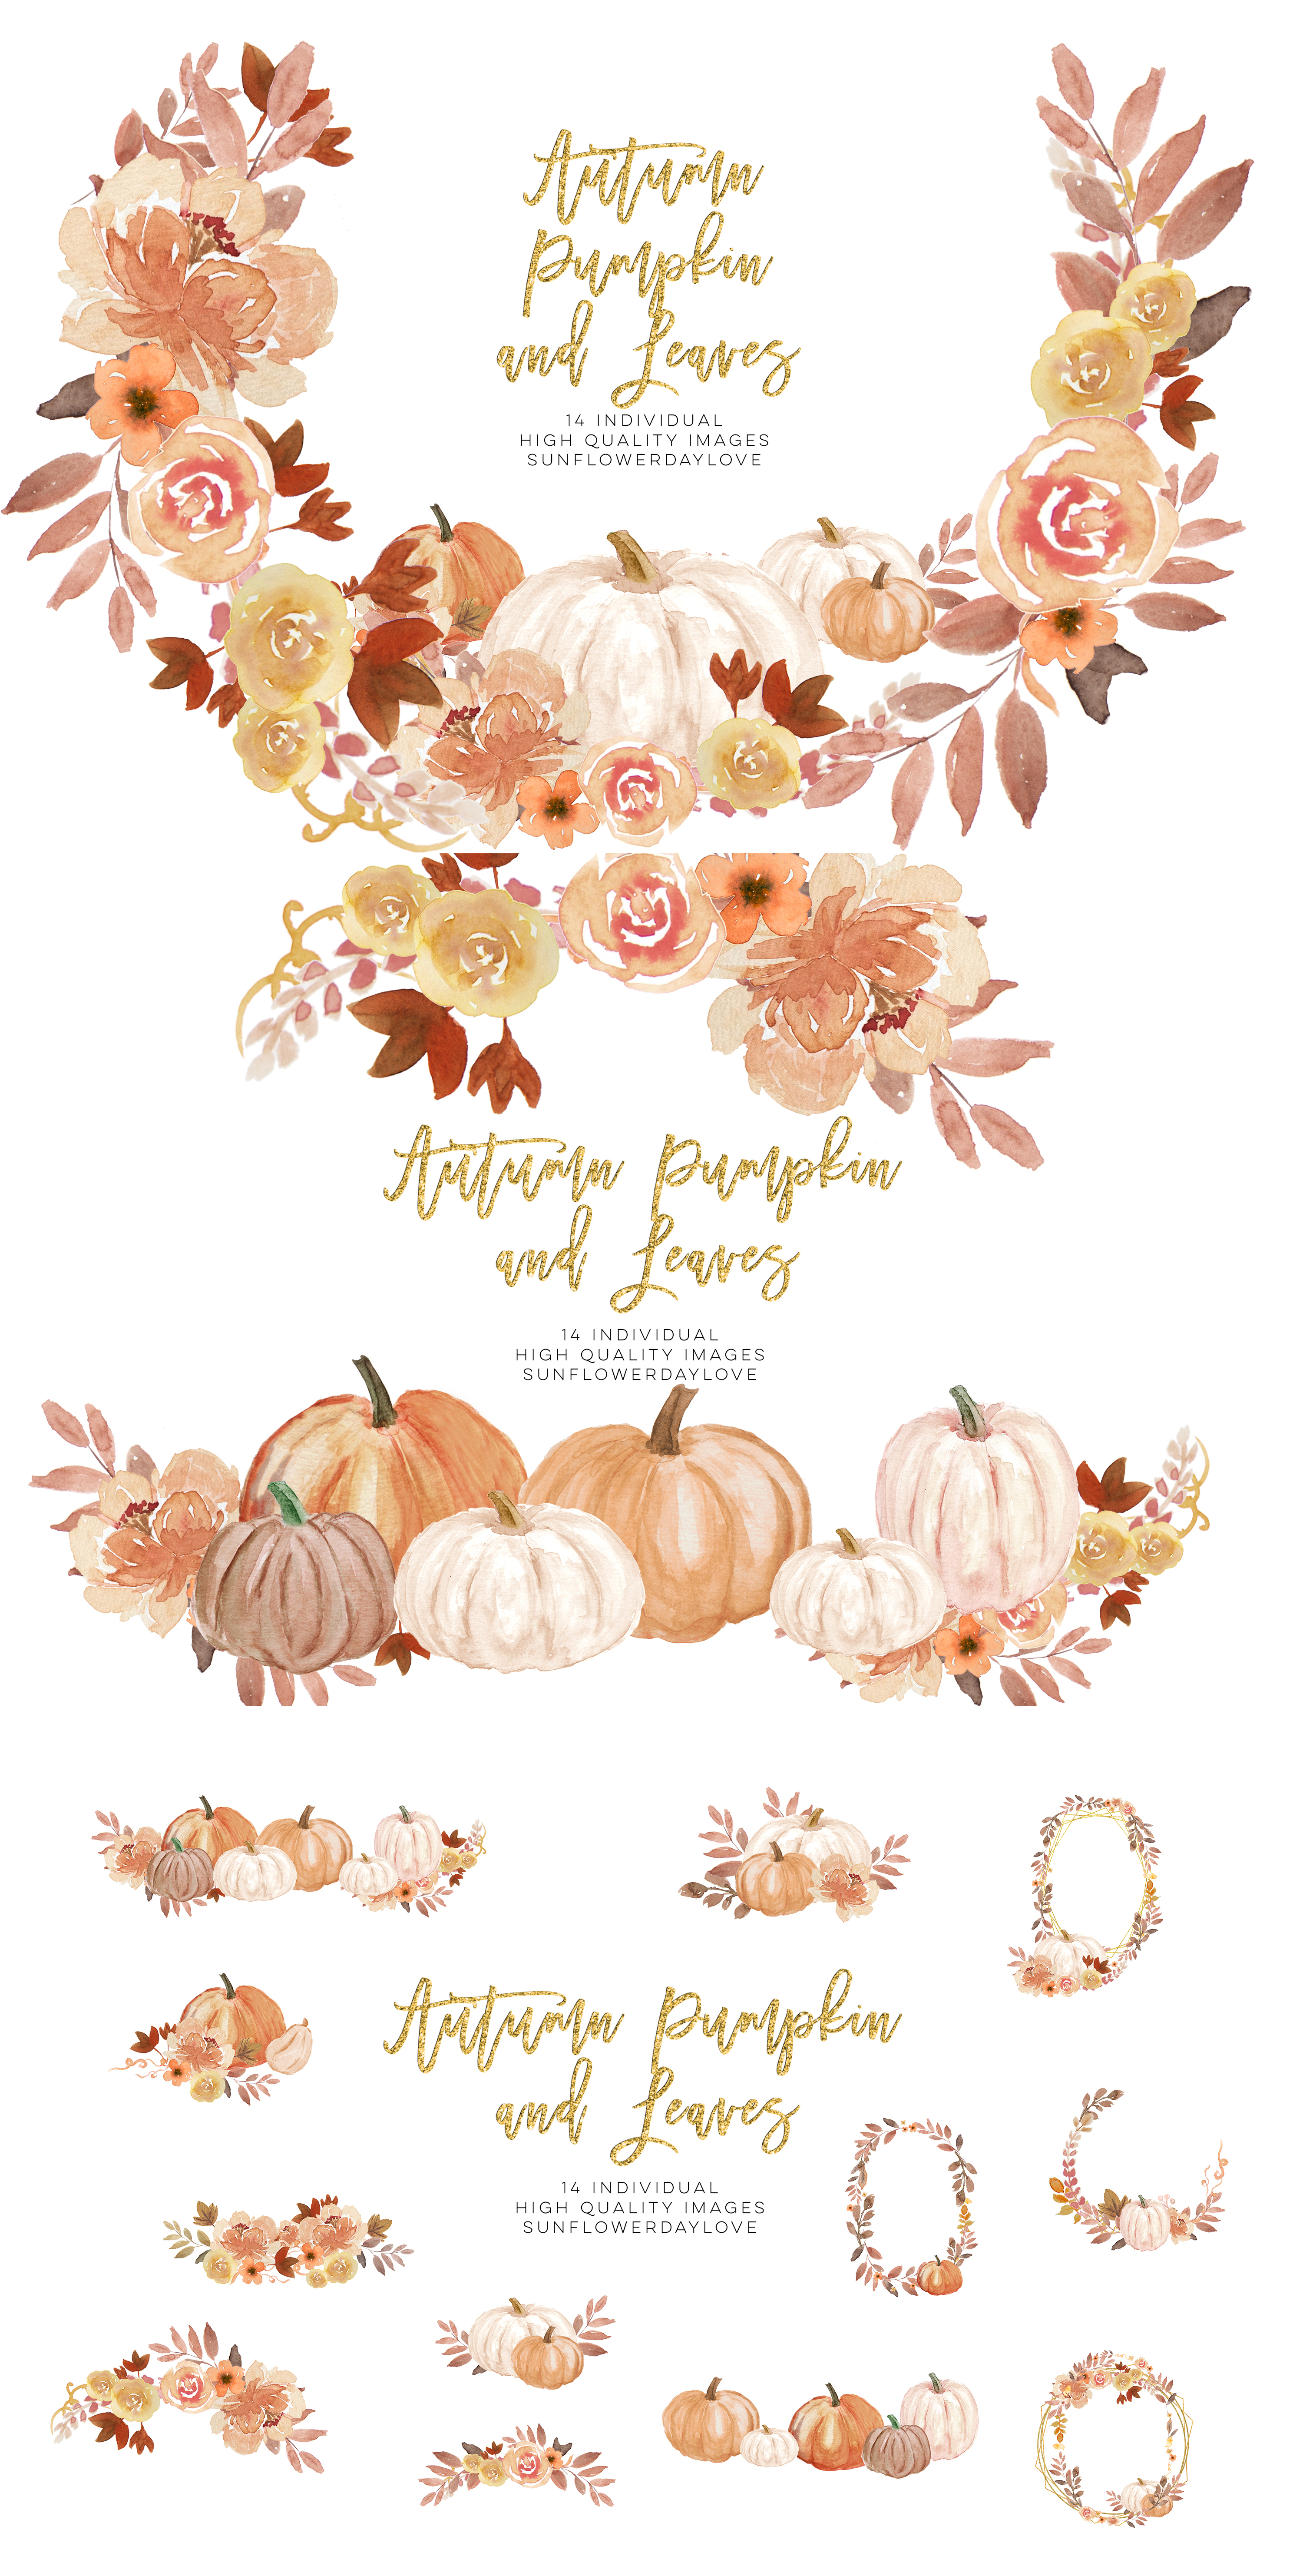 Autumn Wreath Pumpkin and leaves clipart example image 4